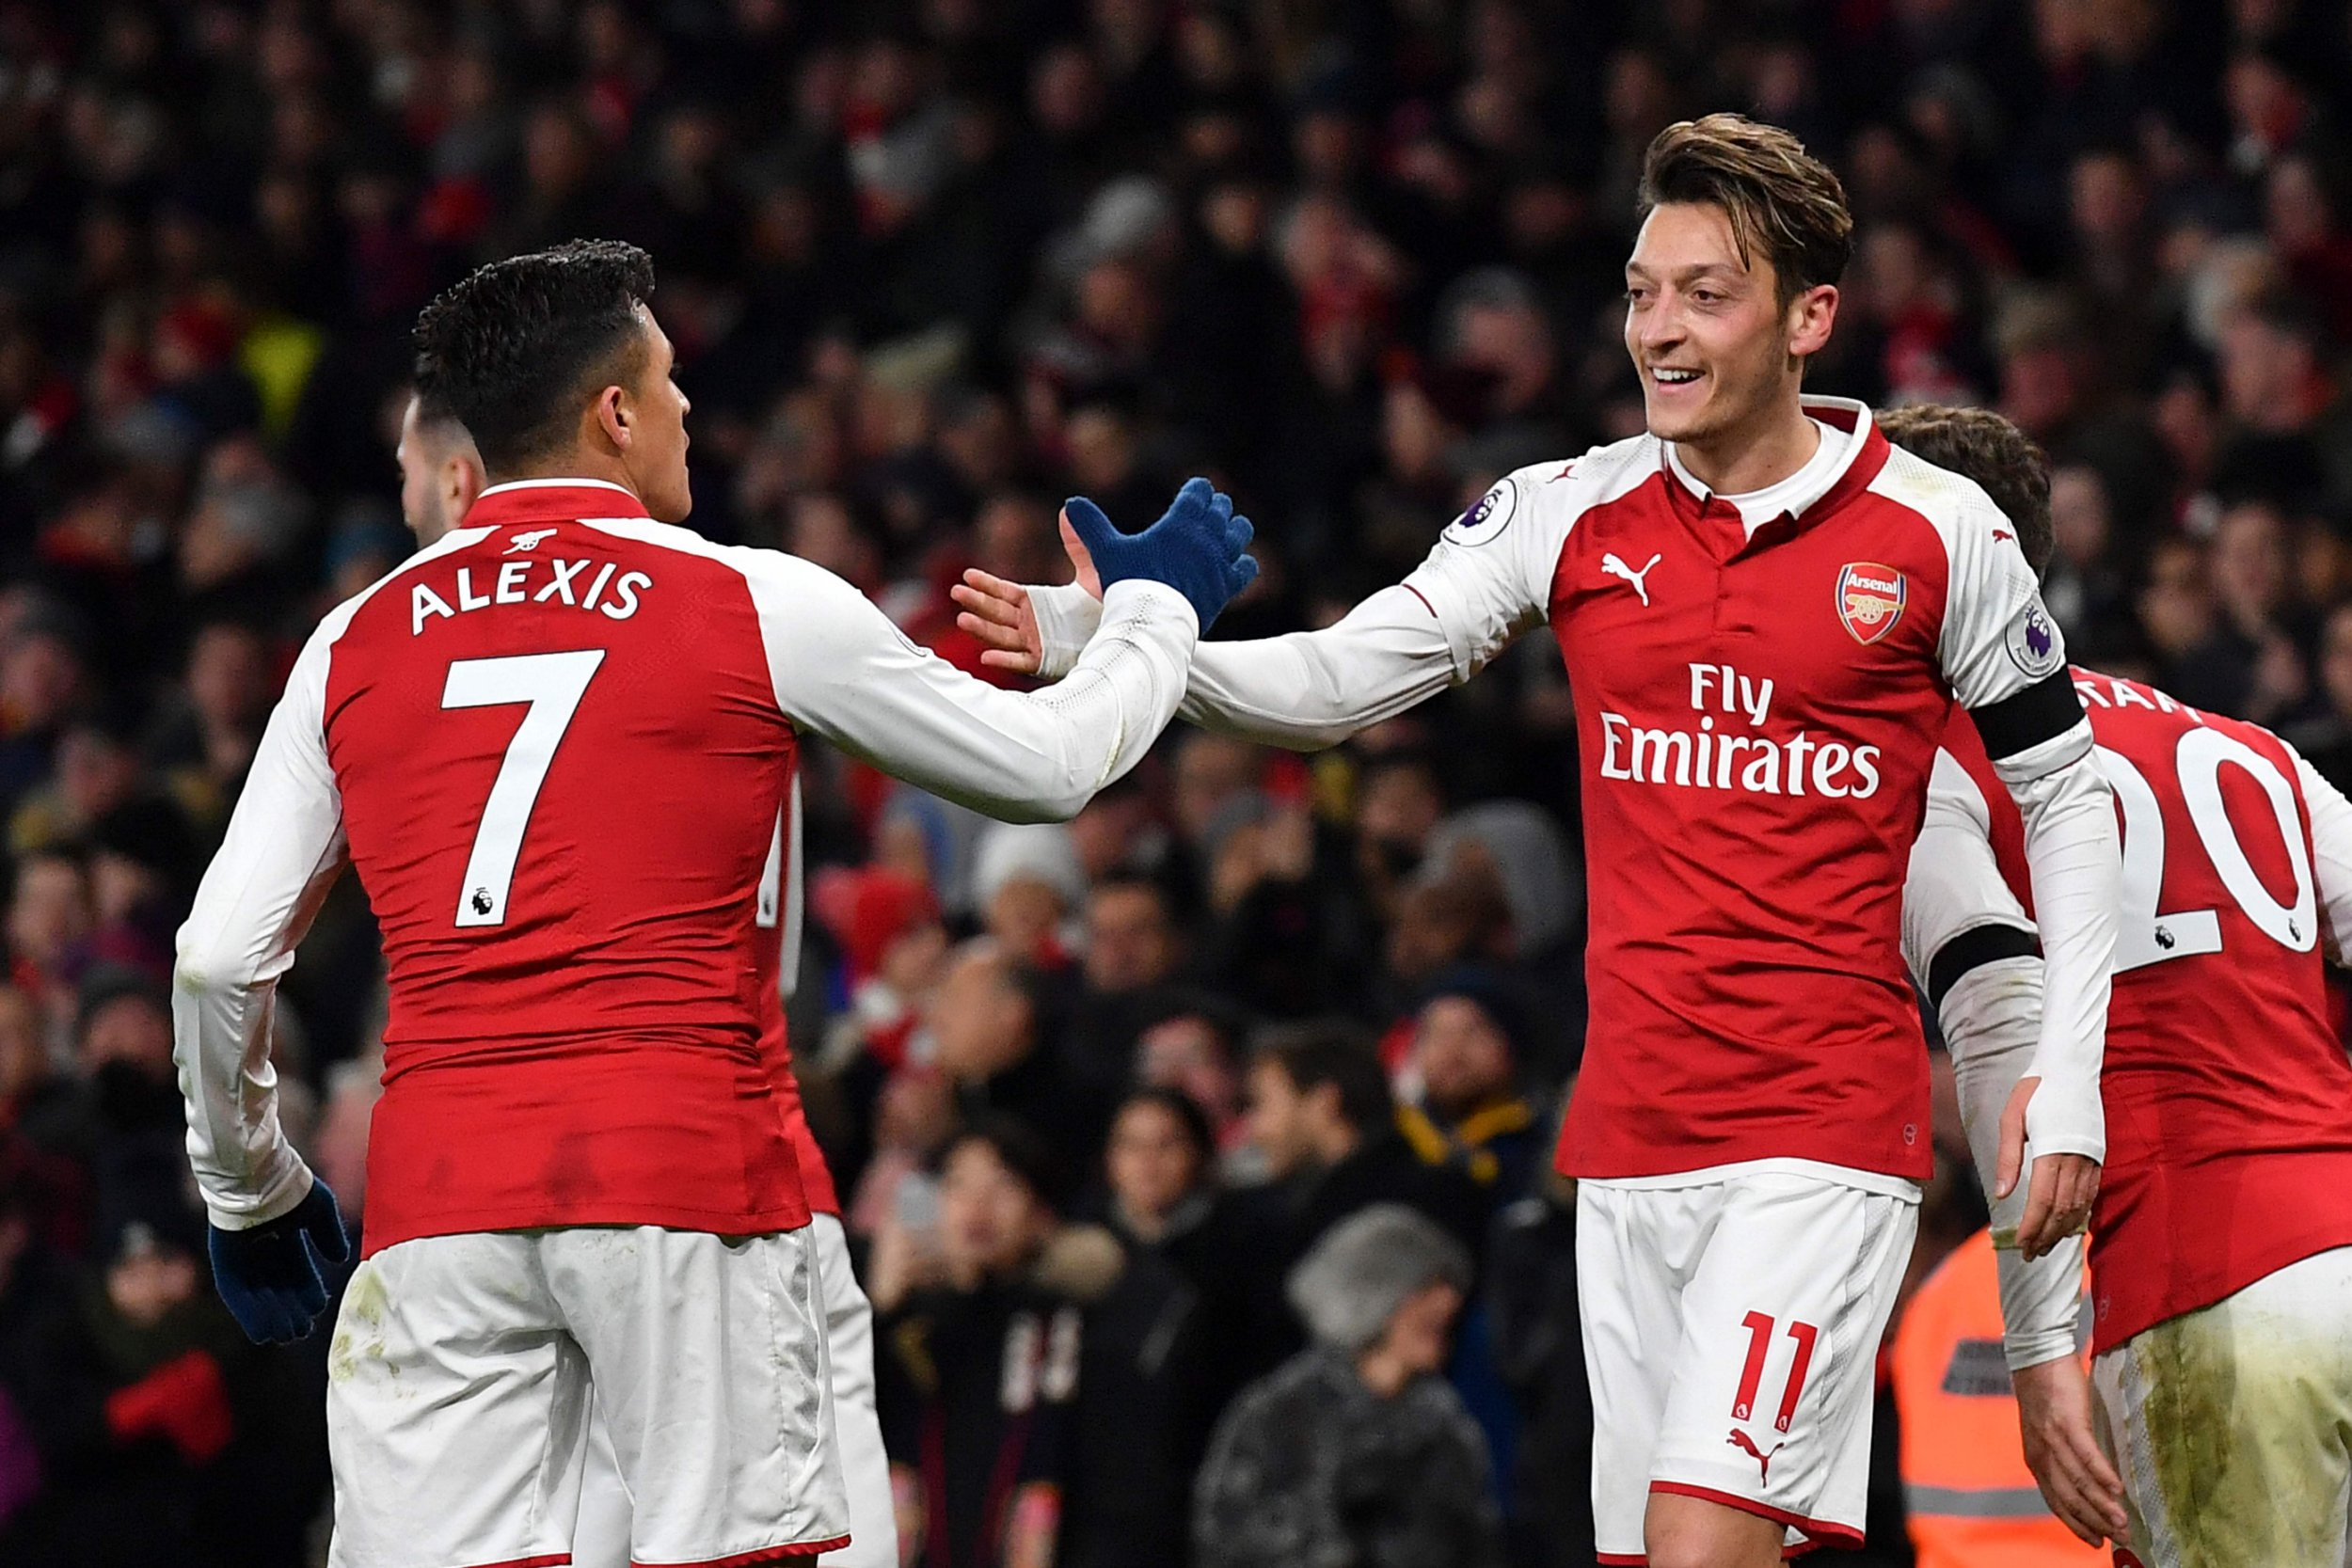 Mesut Ozil high fives with Alexis Sanchez